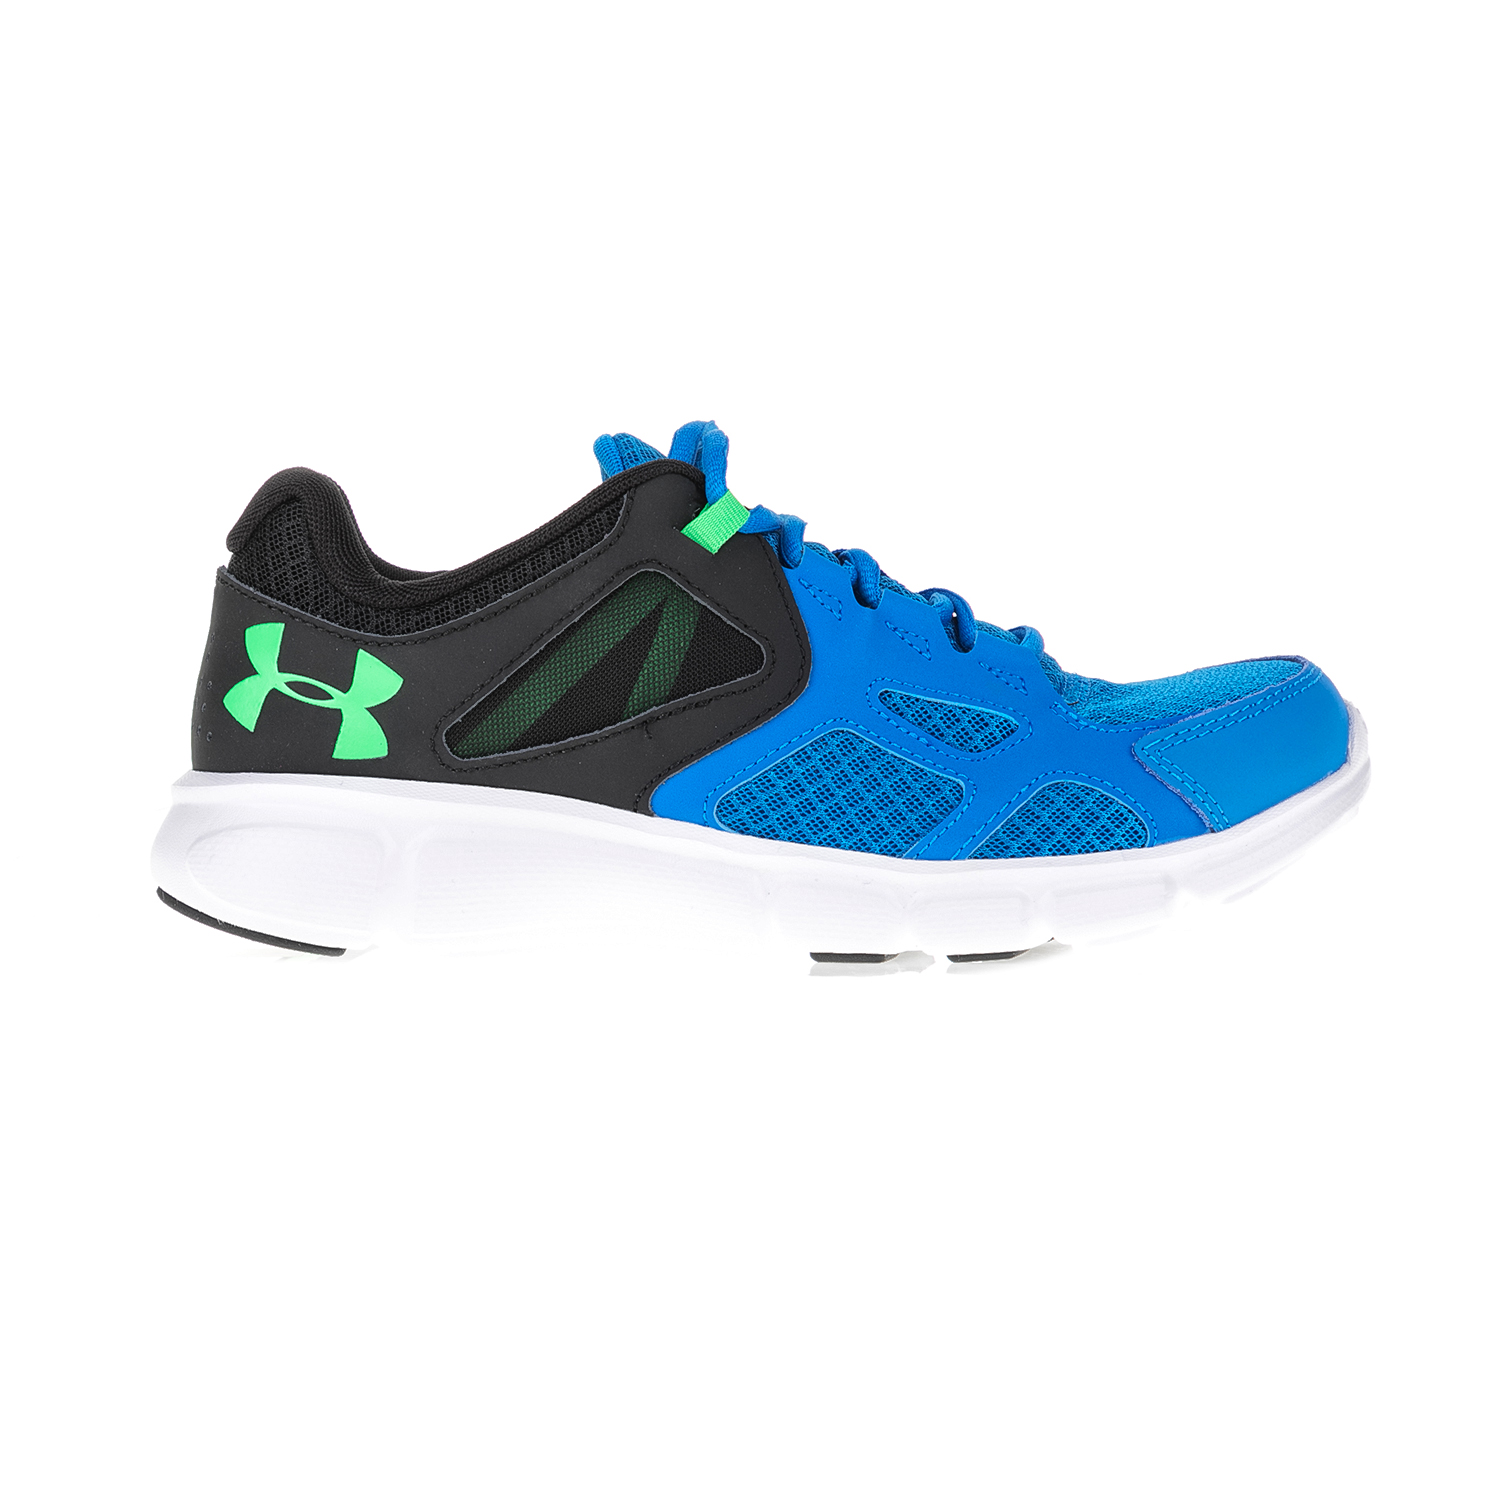 UNDER ARMOUR – Ανδρικά αθλητικά παπούτσια UNDER ARMOUR THRILL FOOTWEAR μπλε-μαύρα